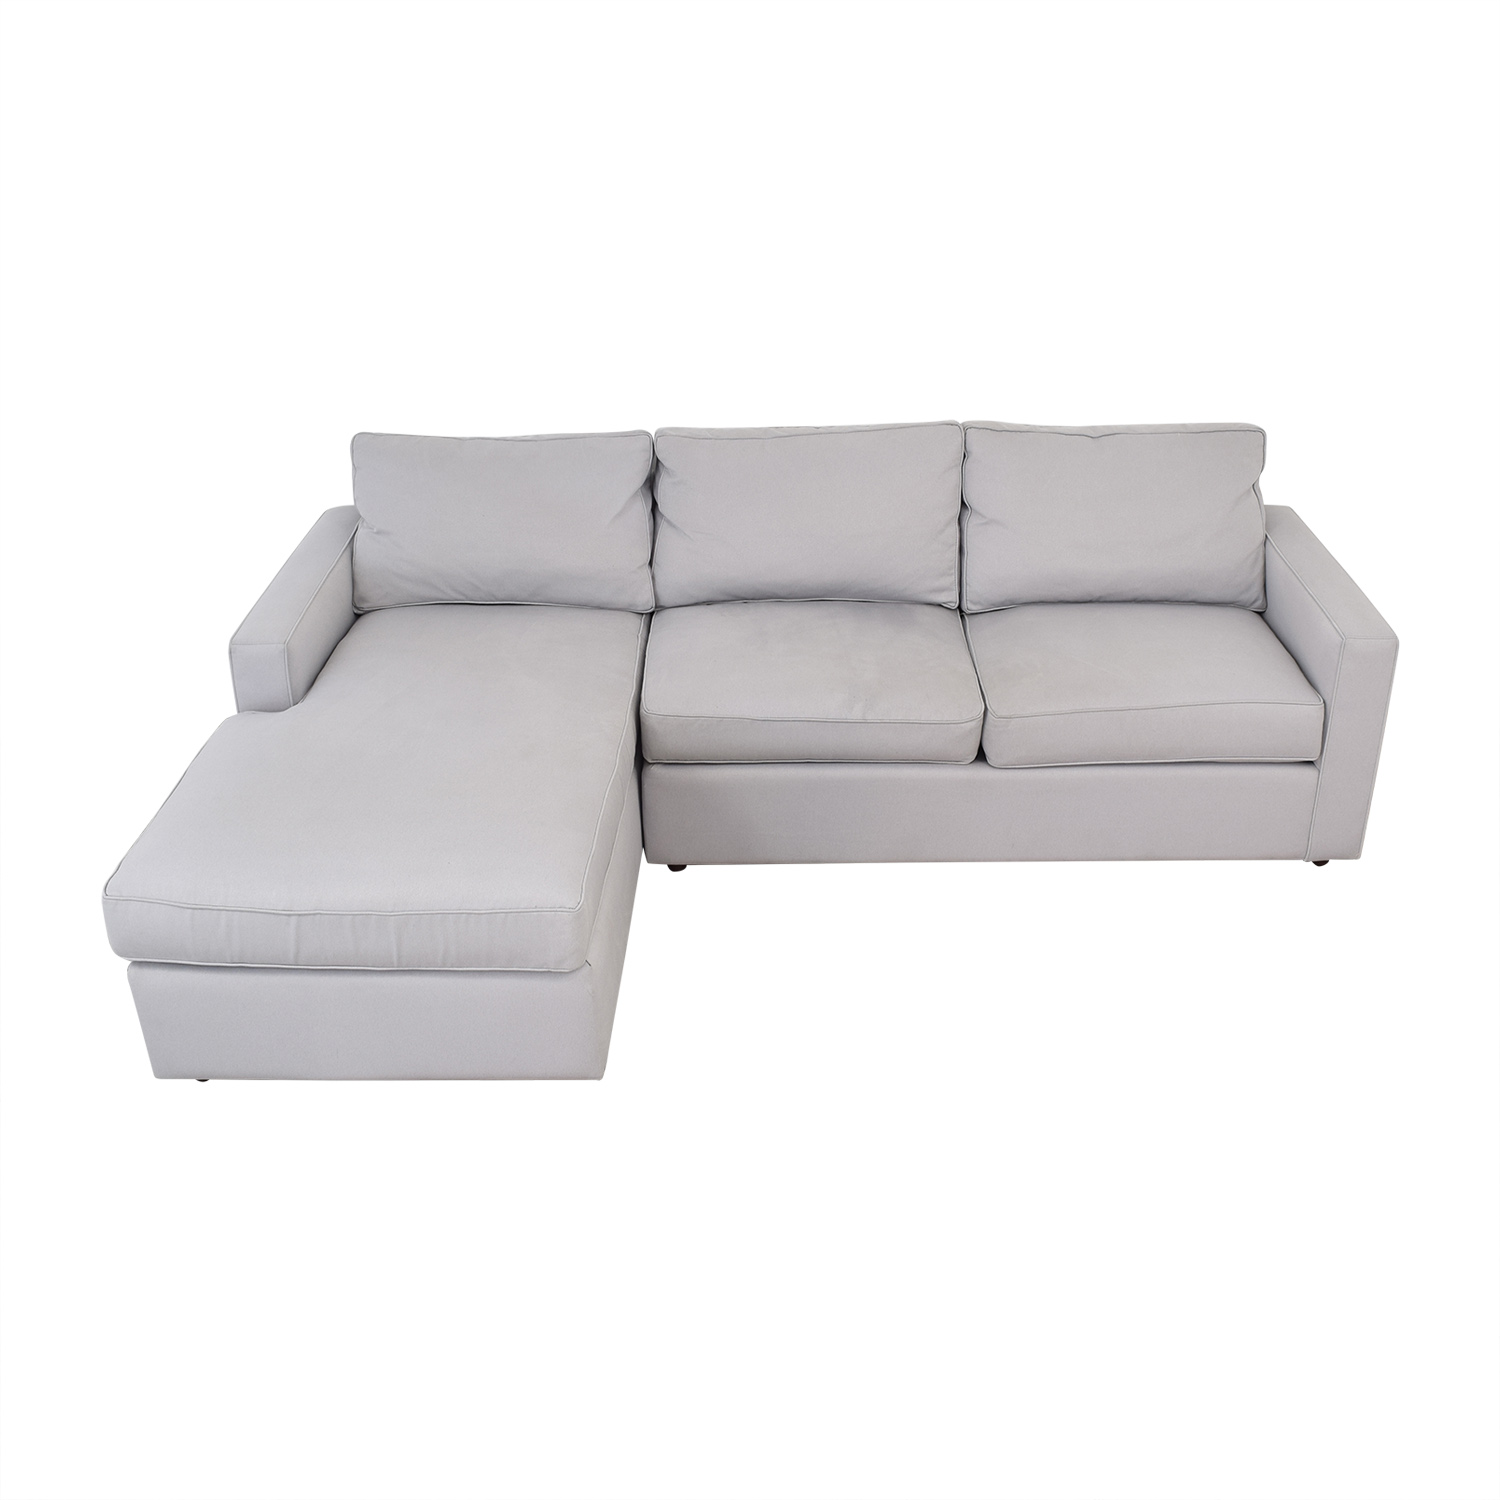 Room & Board Room & Board Sofa with Chaise dimensions